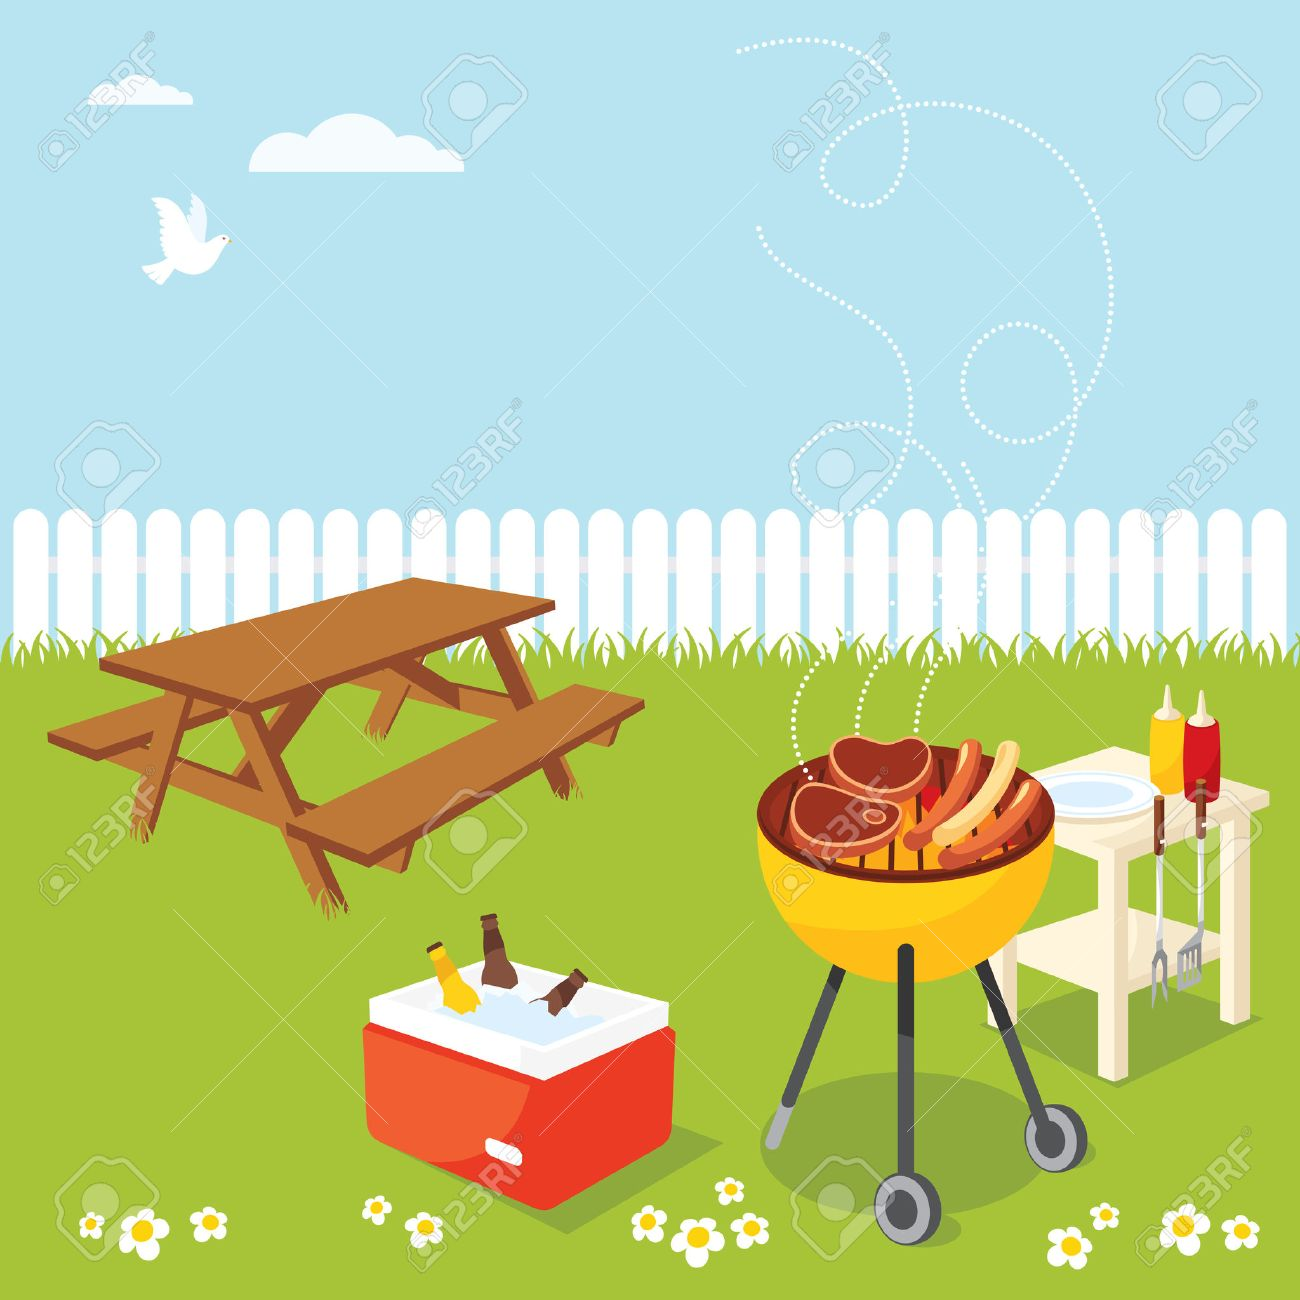 Bbq party clipart 2 » Clipart Station.